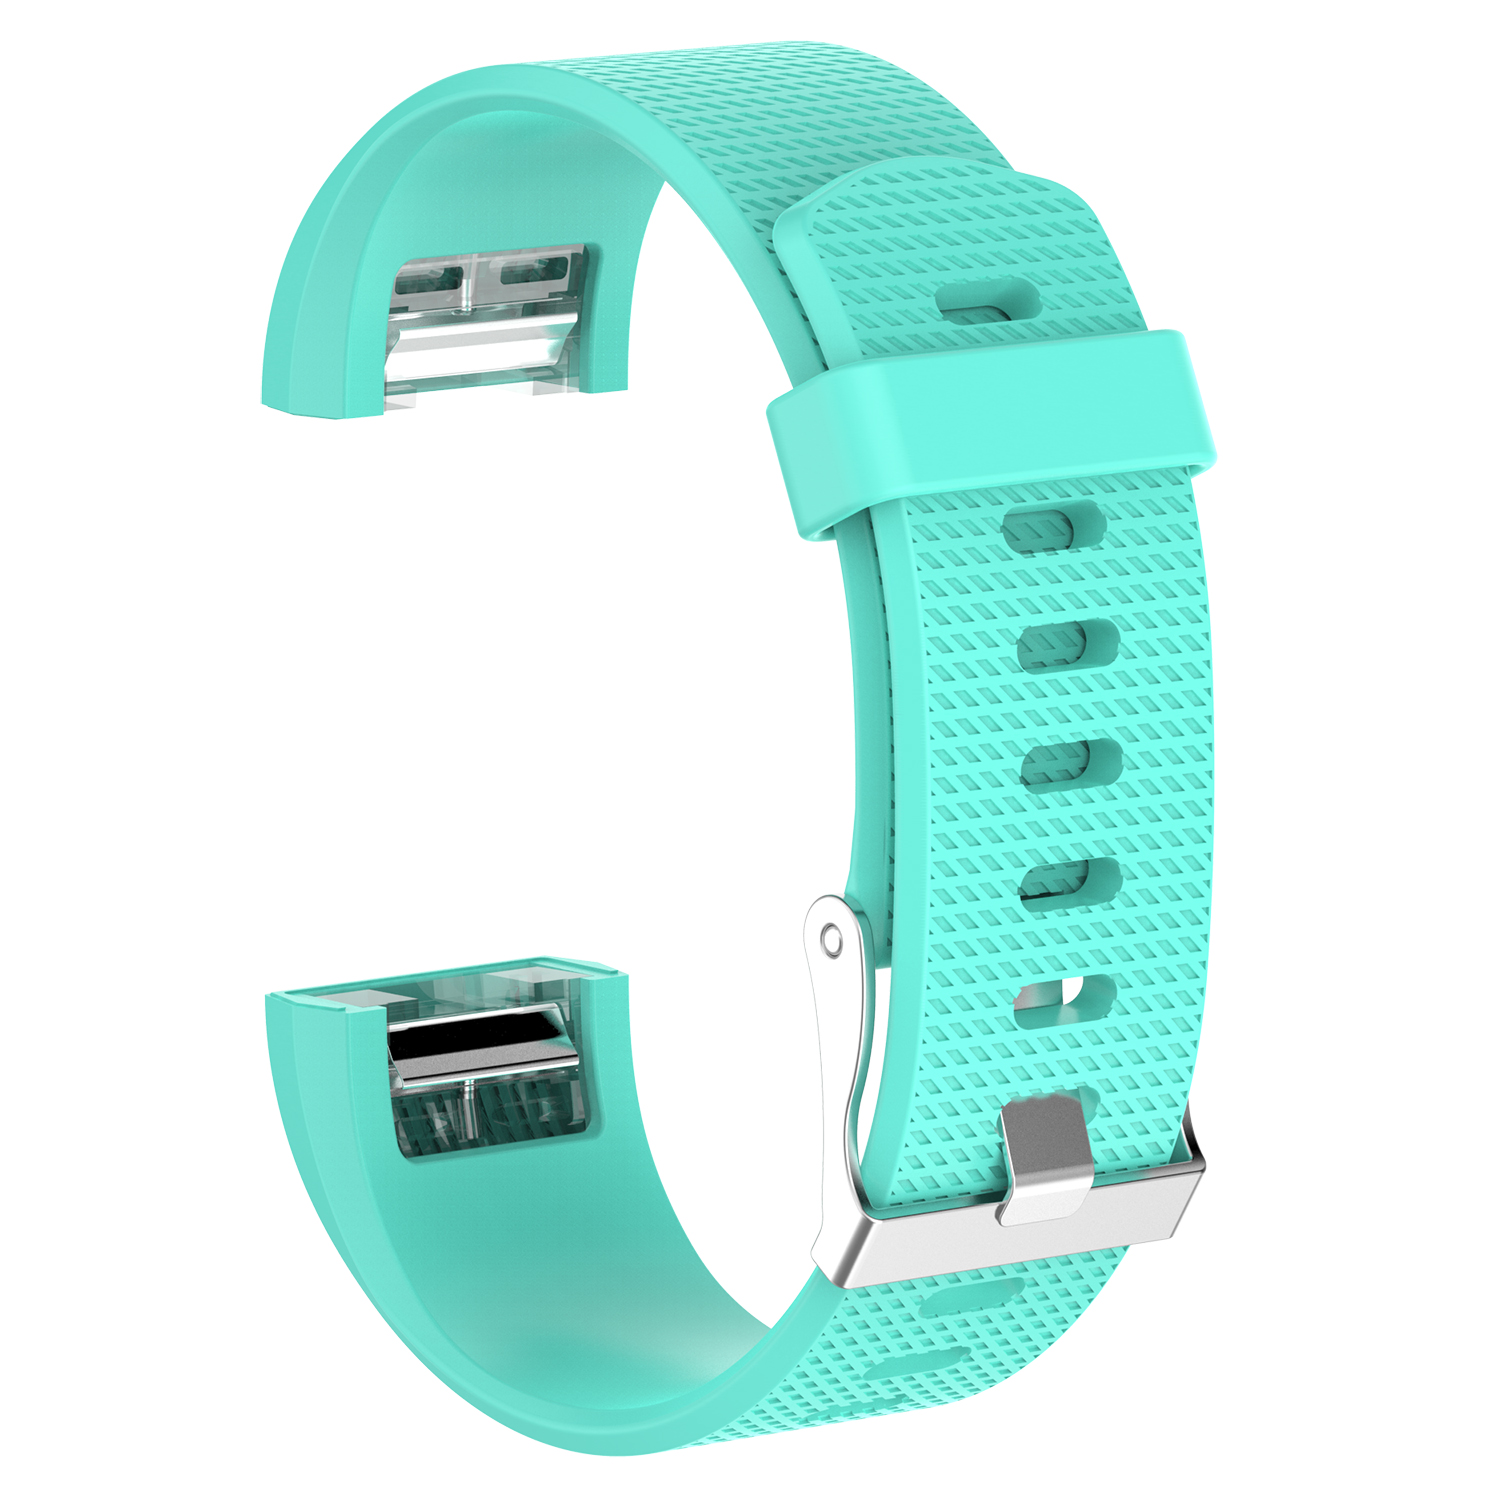 Replacement-Silicone-Wristband-Watch-Strap-Bands-Bracelet-For-Fitbit-Charge-2 thumbnail 48